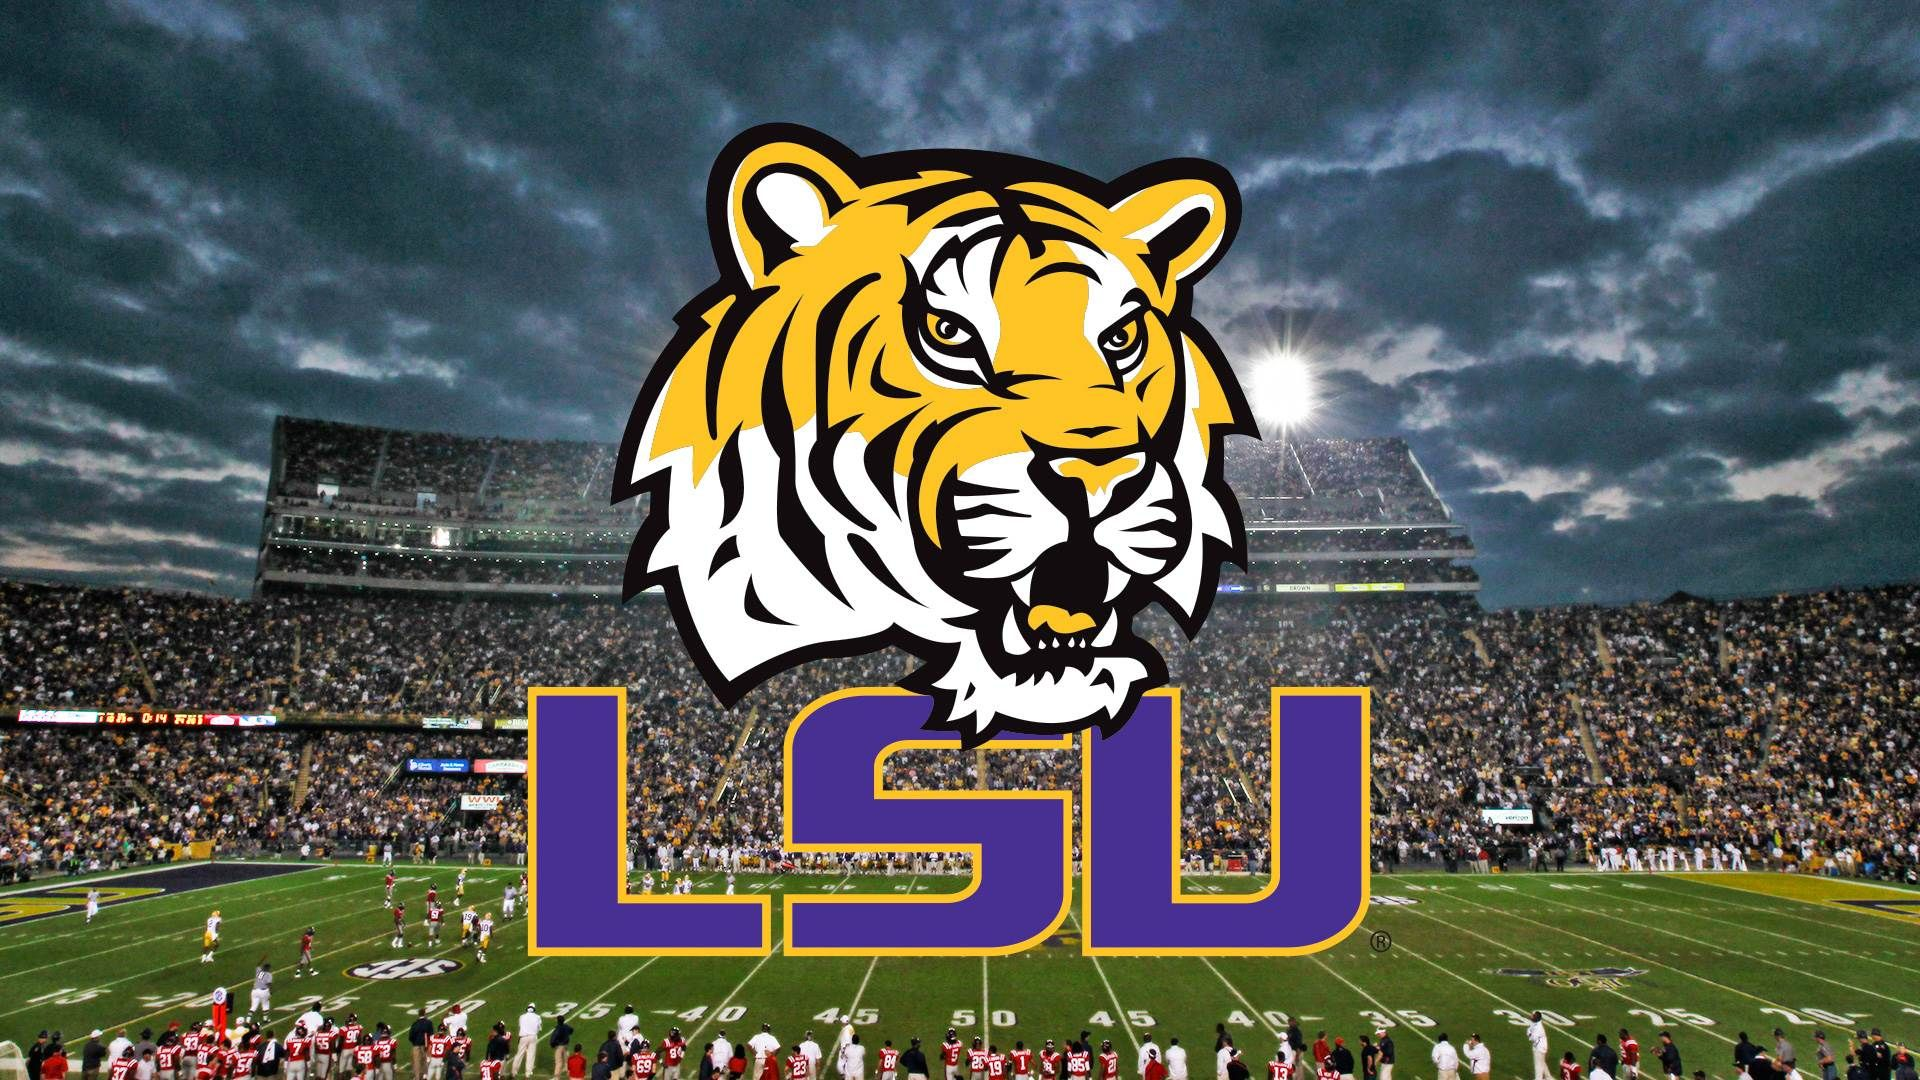 Free Lsu Tigers Iphone Uamp Ipod Touch Wallpapers 1920 1080 Lsu Wallpaper Adorable Wallpapers Lsu Wallpaper Adorable